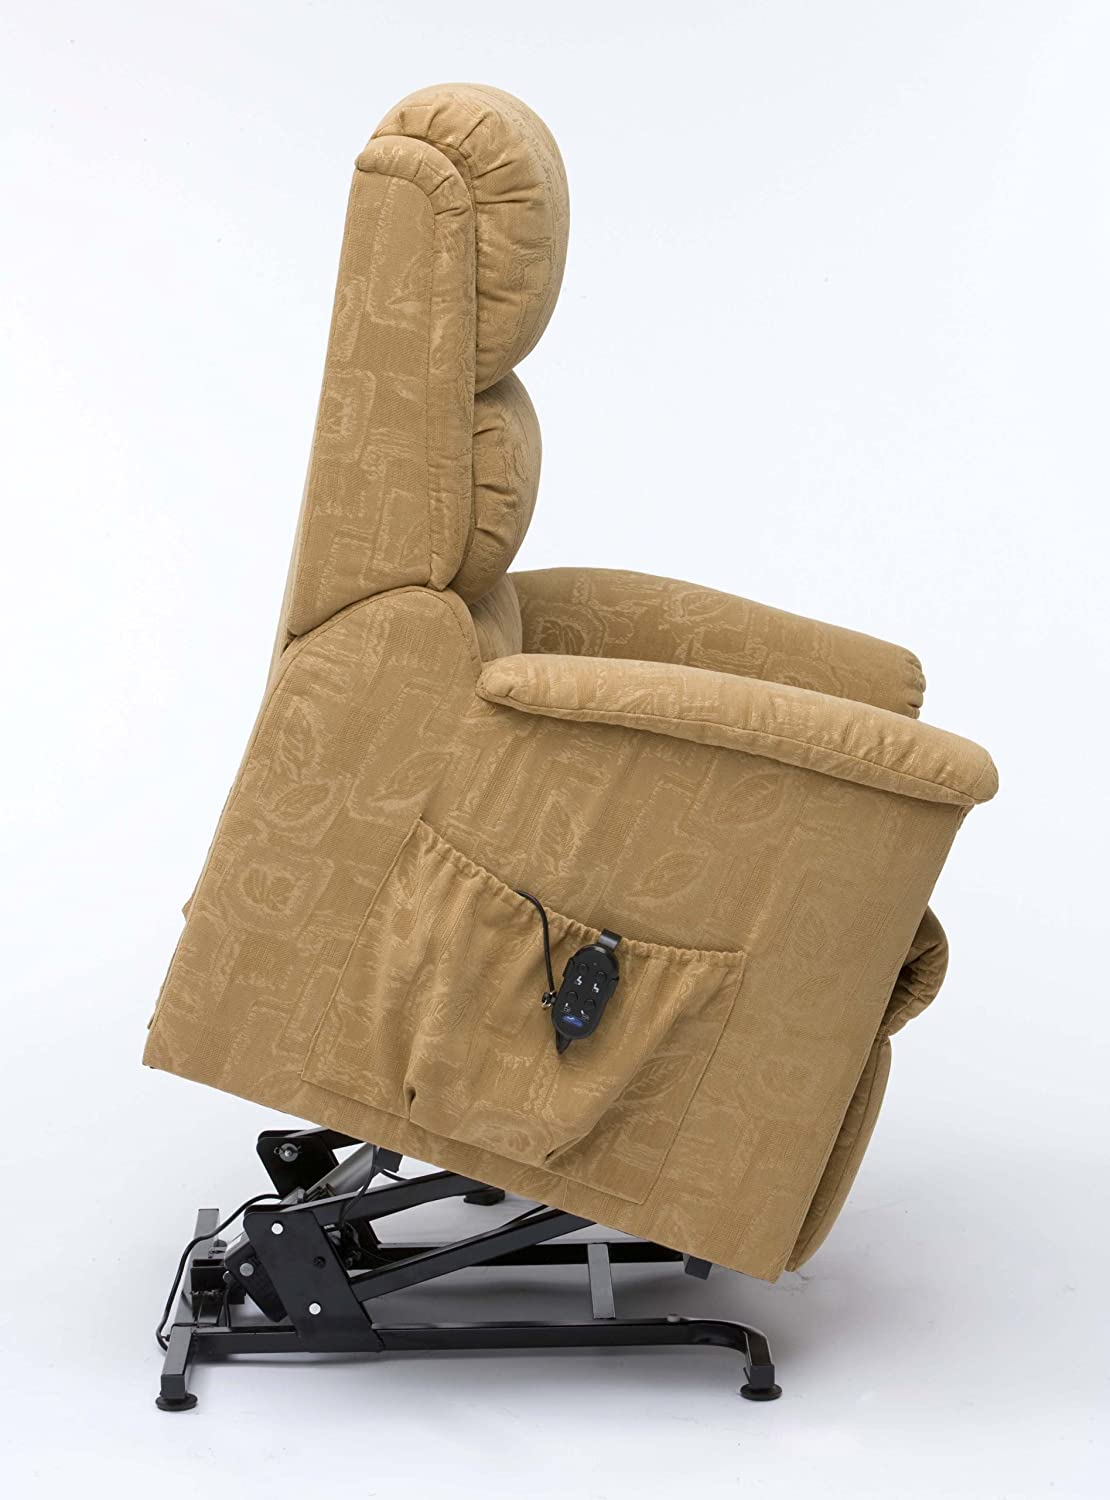 Nevada dual motor rise and recliner mobility chair Amazon.co.uk Kitchen u0026 Home & Nevada dual motor rise and recliner mobility chair: Amazon.co.uk ... islam-shia.org